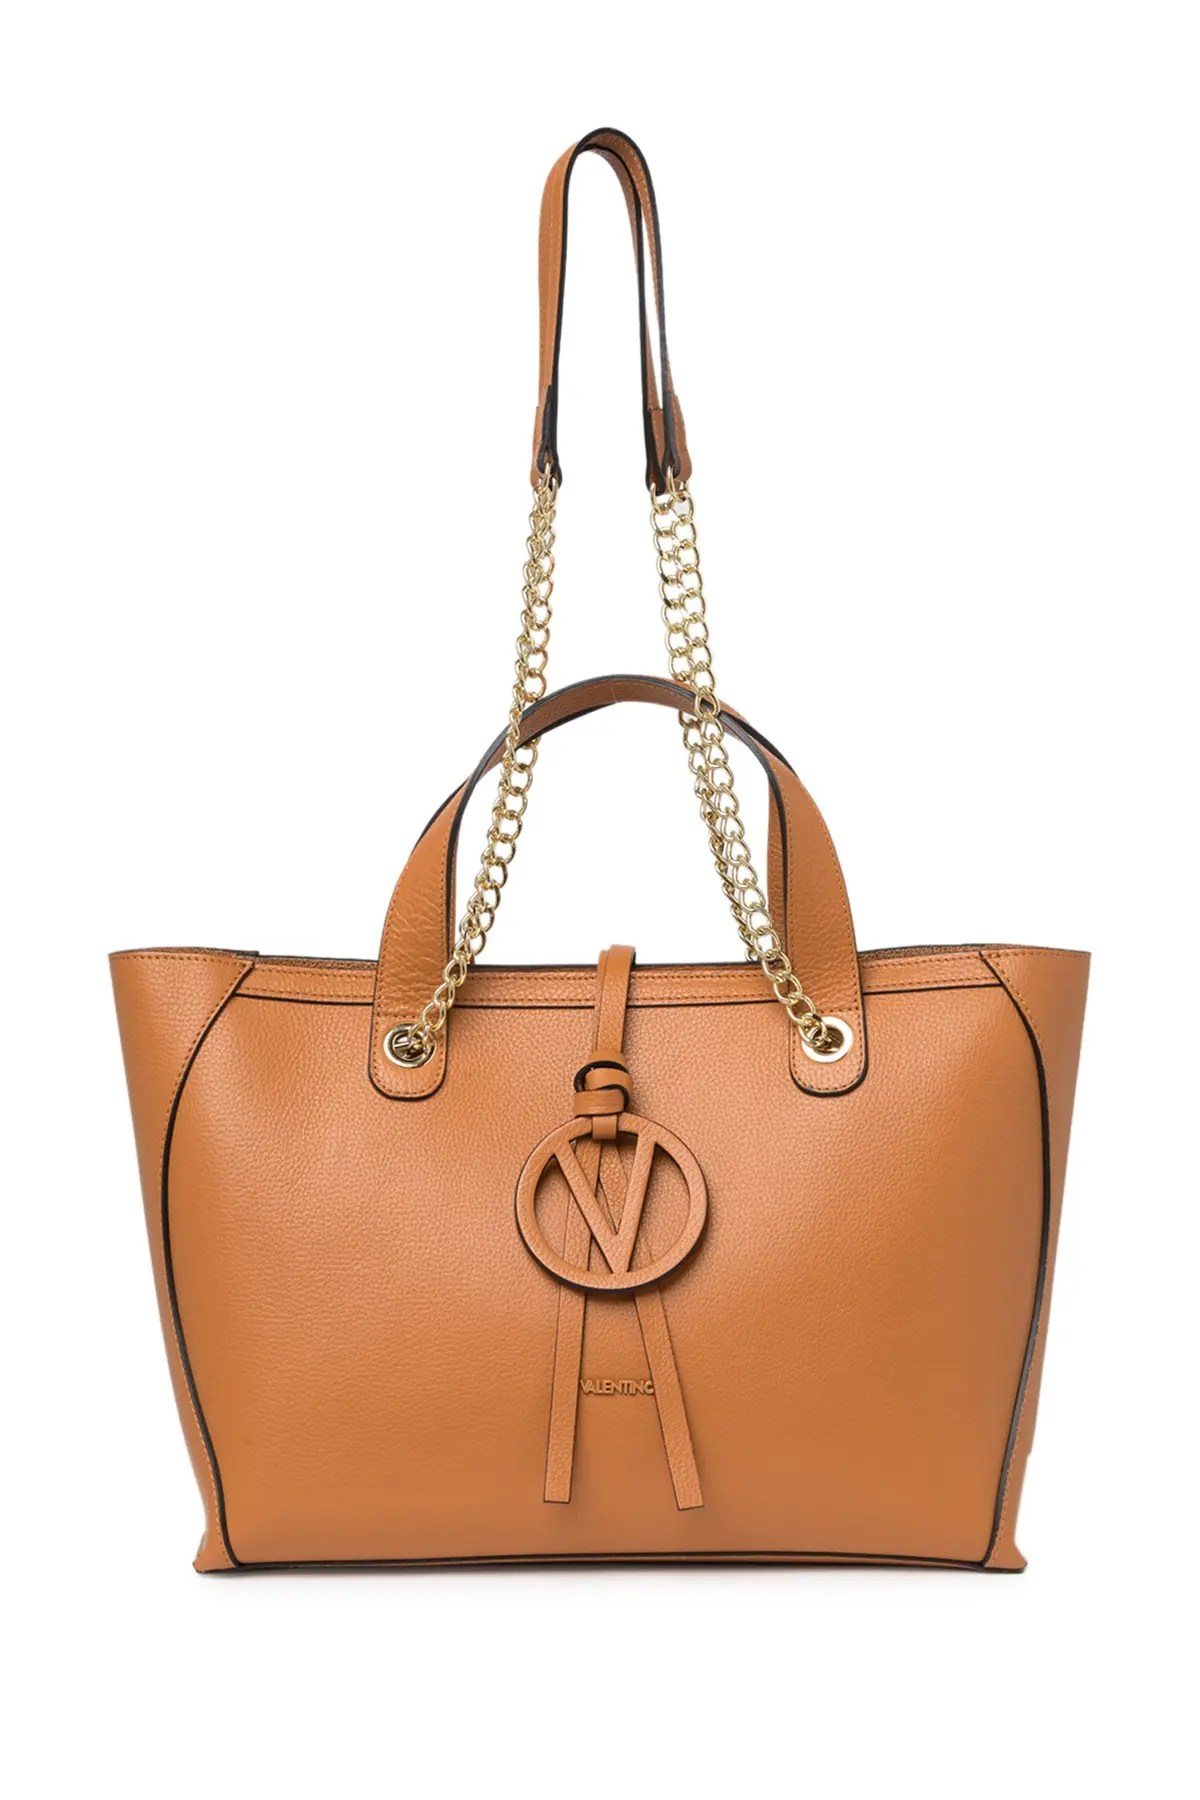 valentino by mario valentino partial chain kate medallion shoulder bag nordstrom rack